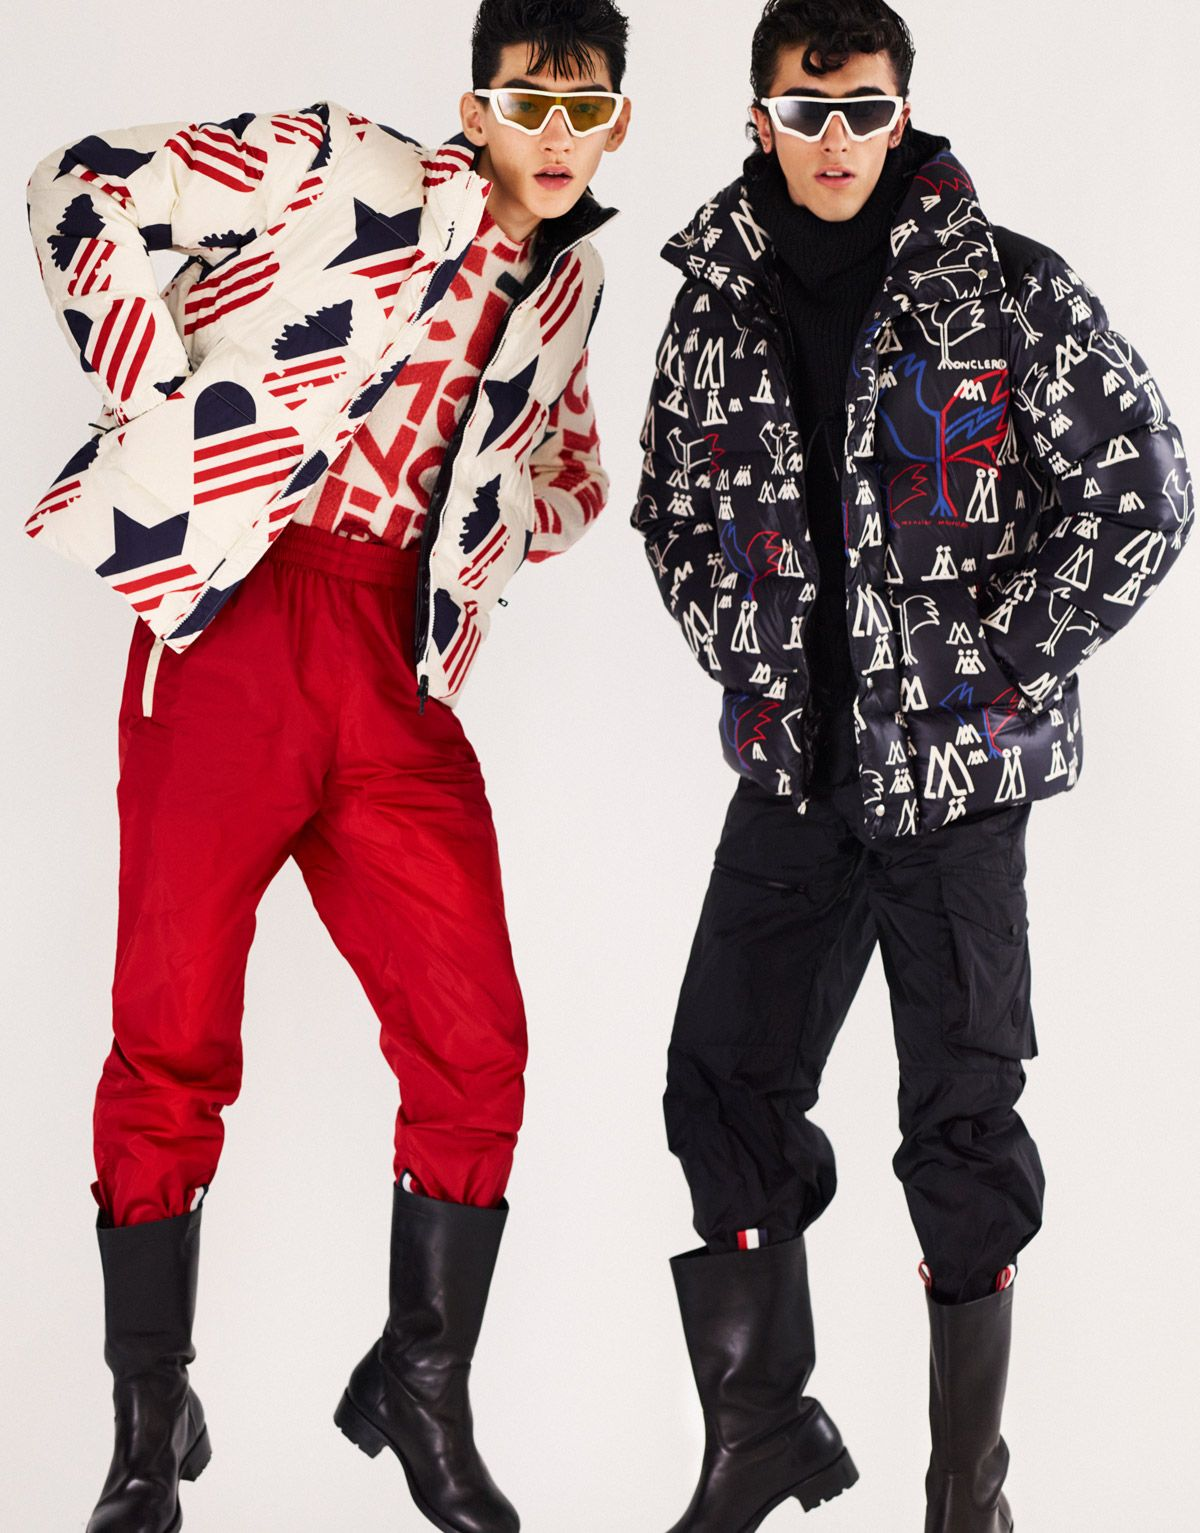 2 Moncler 1952 Man's Sergio Zambon on Italy's OG Streetwear Credentials